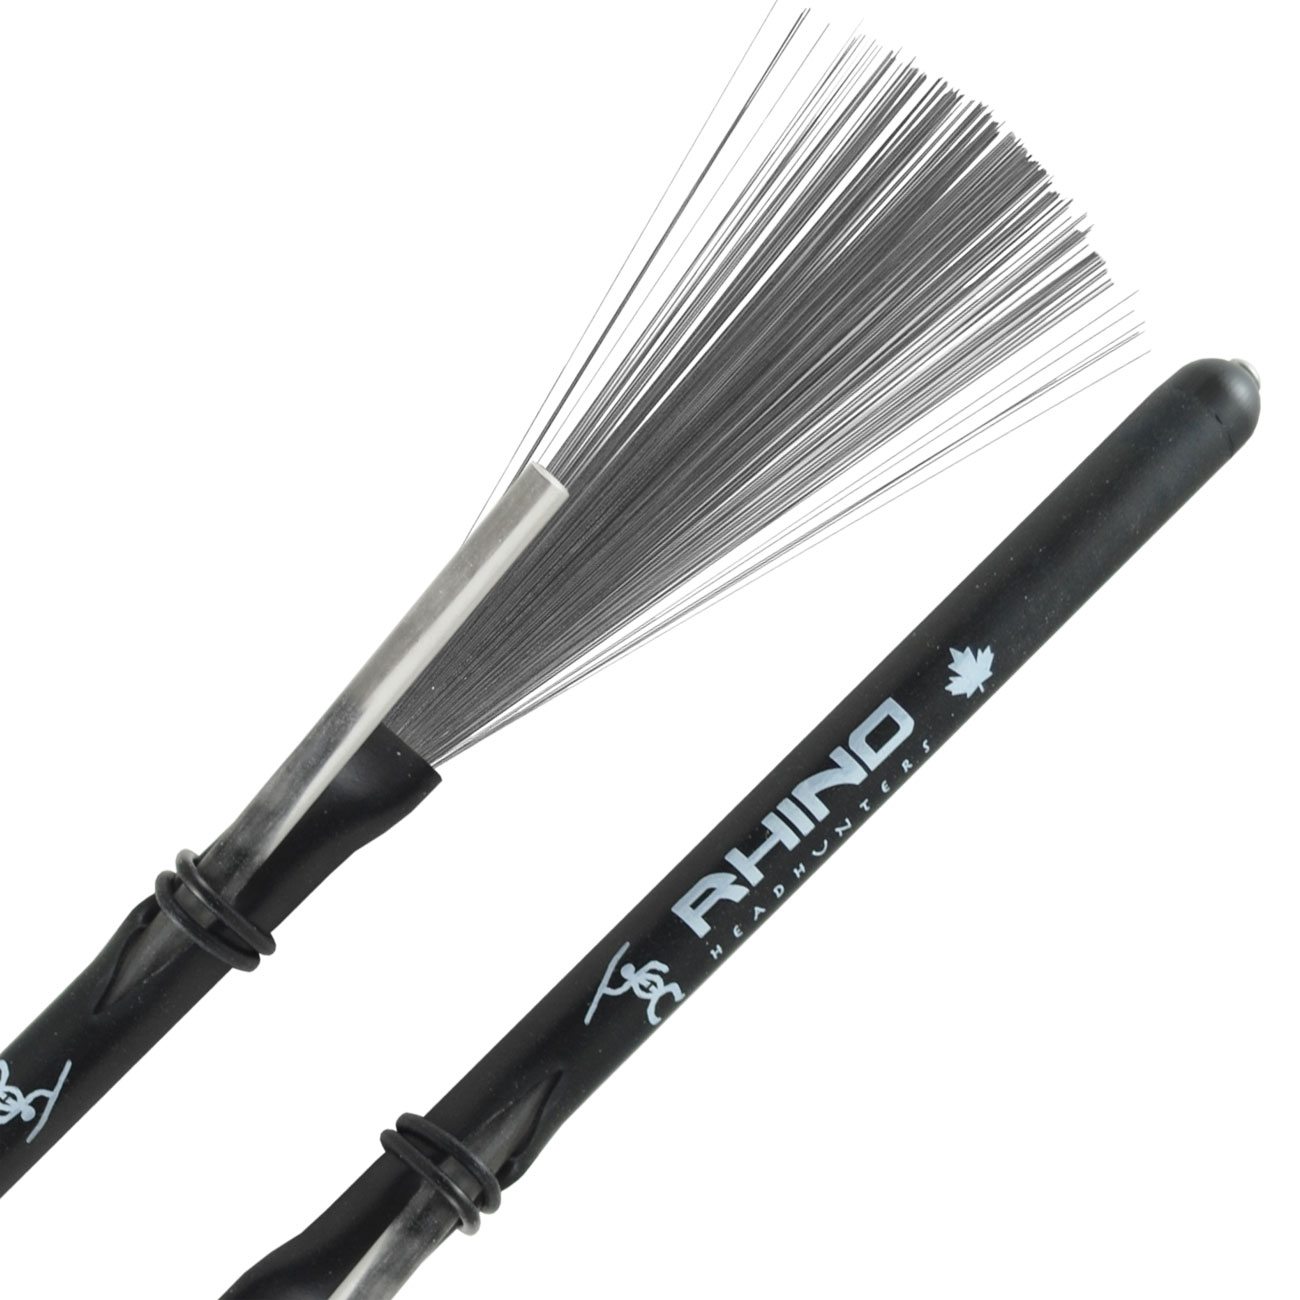 Headhunters Rhino Nylon Rod/Wire Hybrid Brushes